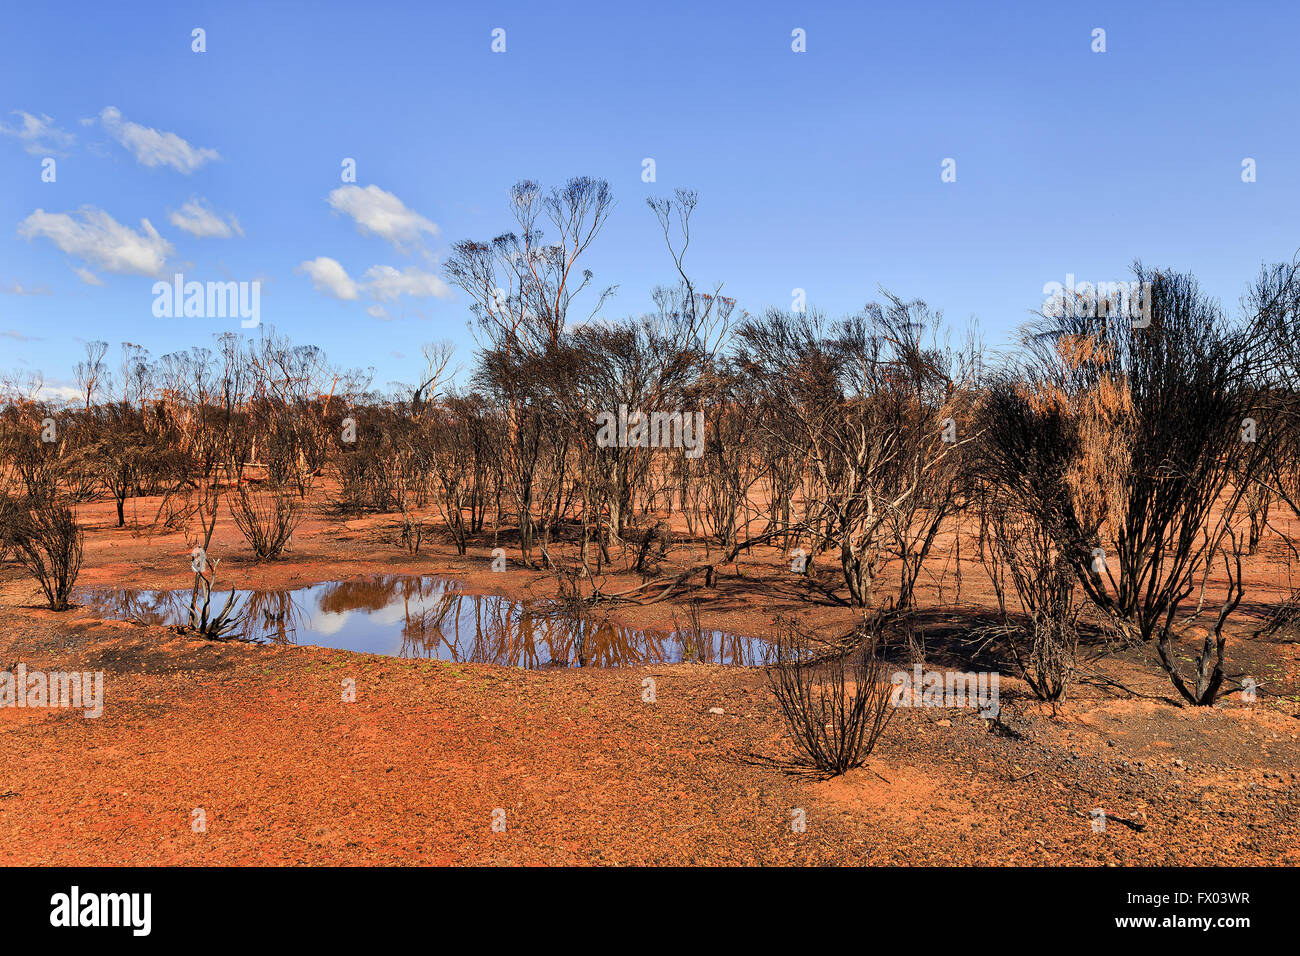 burnt down outback bushland with red soil and dead black trees around small puddle after rain. - Stock Image